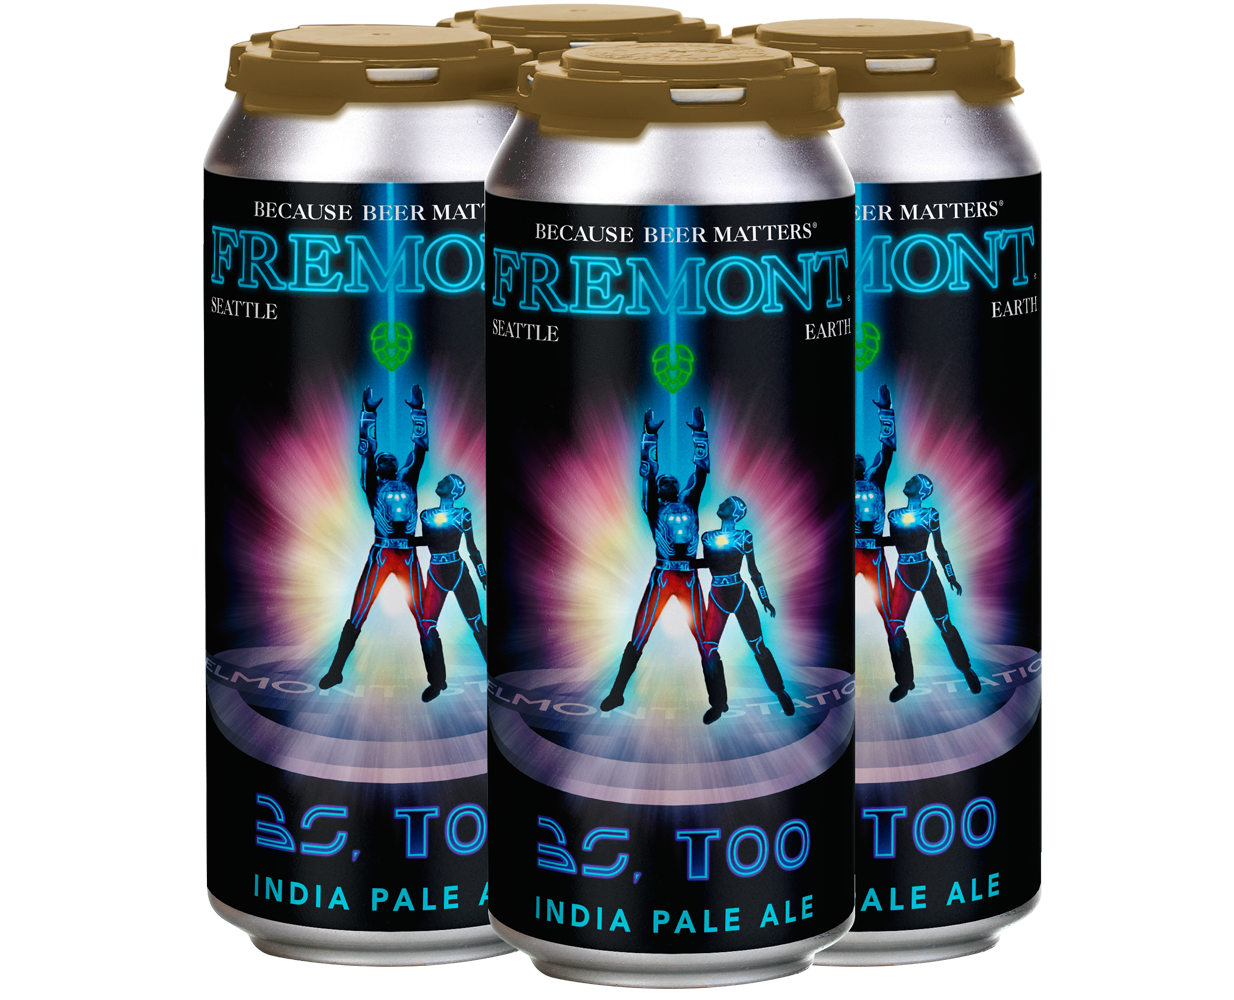 BS, Too 4-Pack 16oz Cans